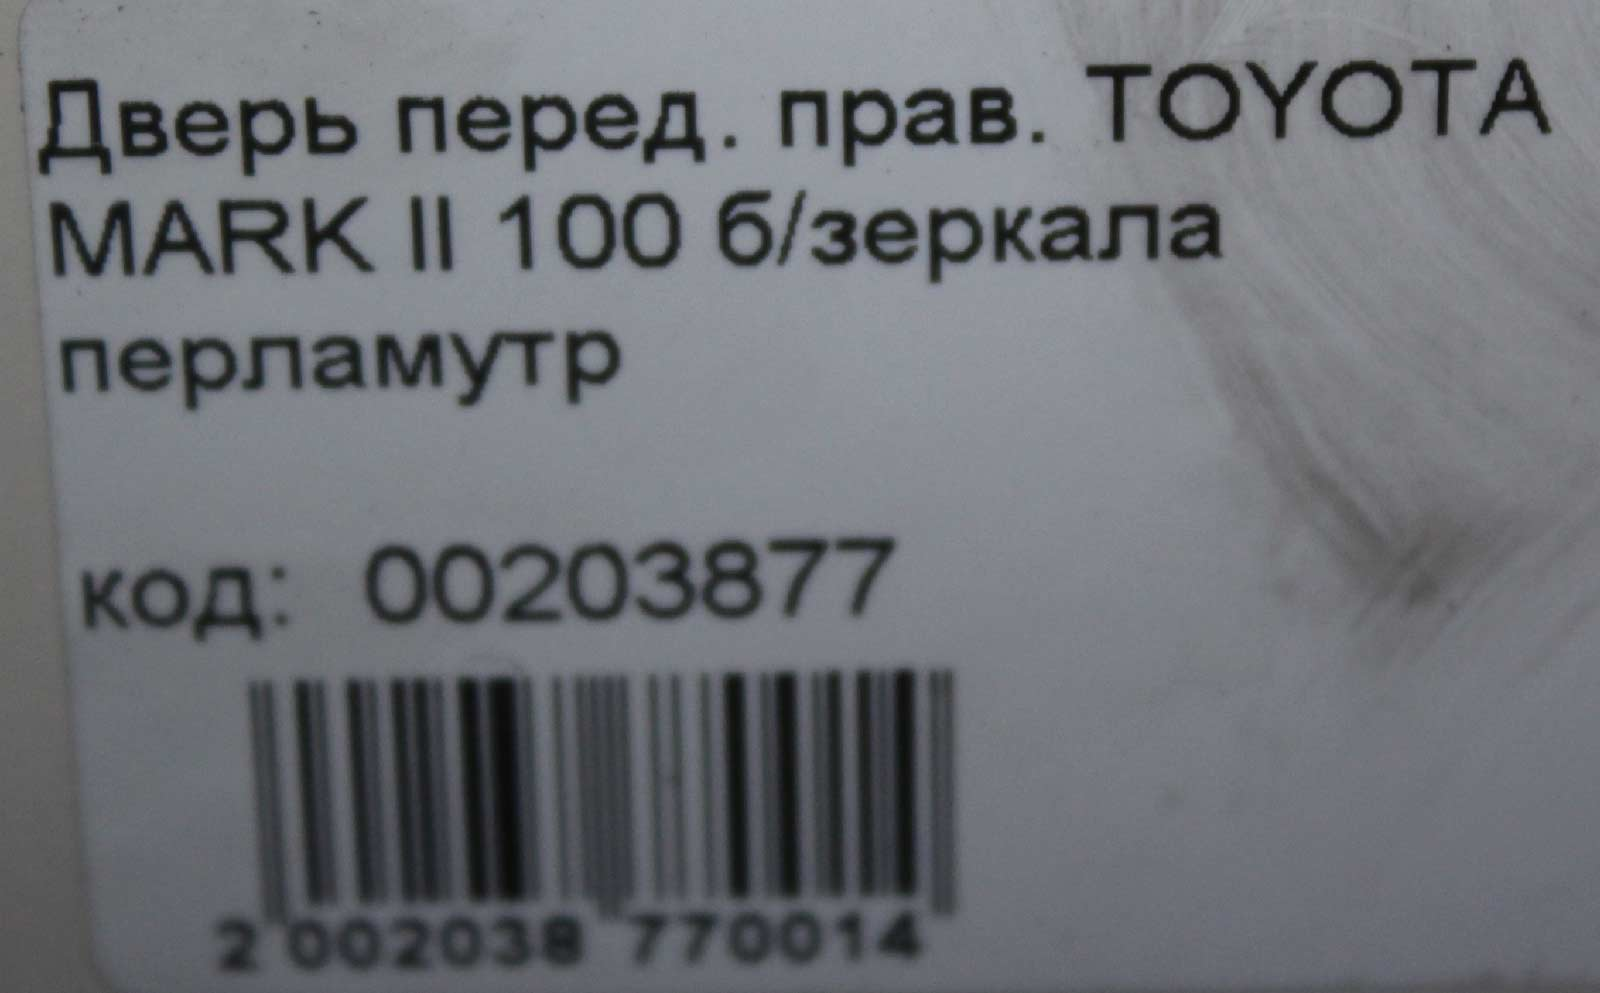 Дверь передняя правая TOYOTA MARK II 100 б/зеркала перламутр 1